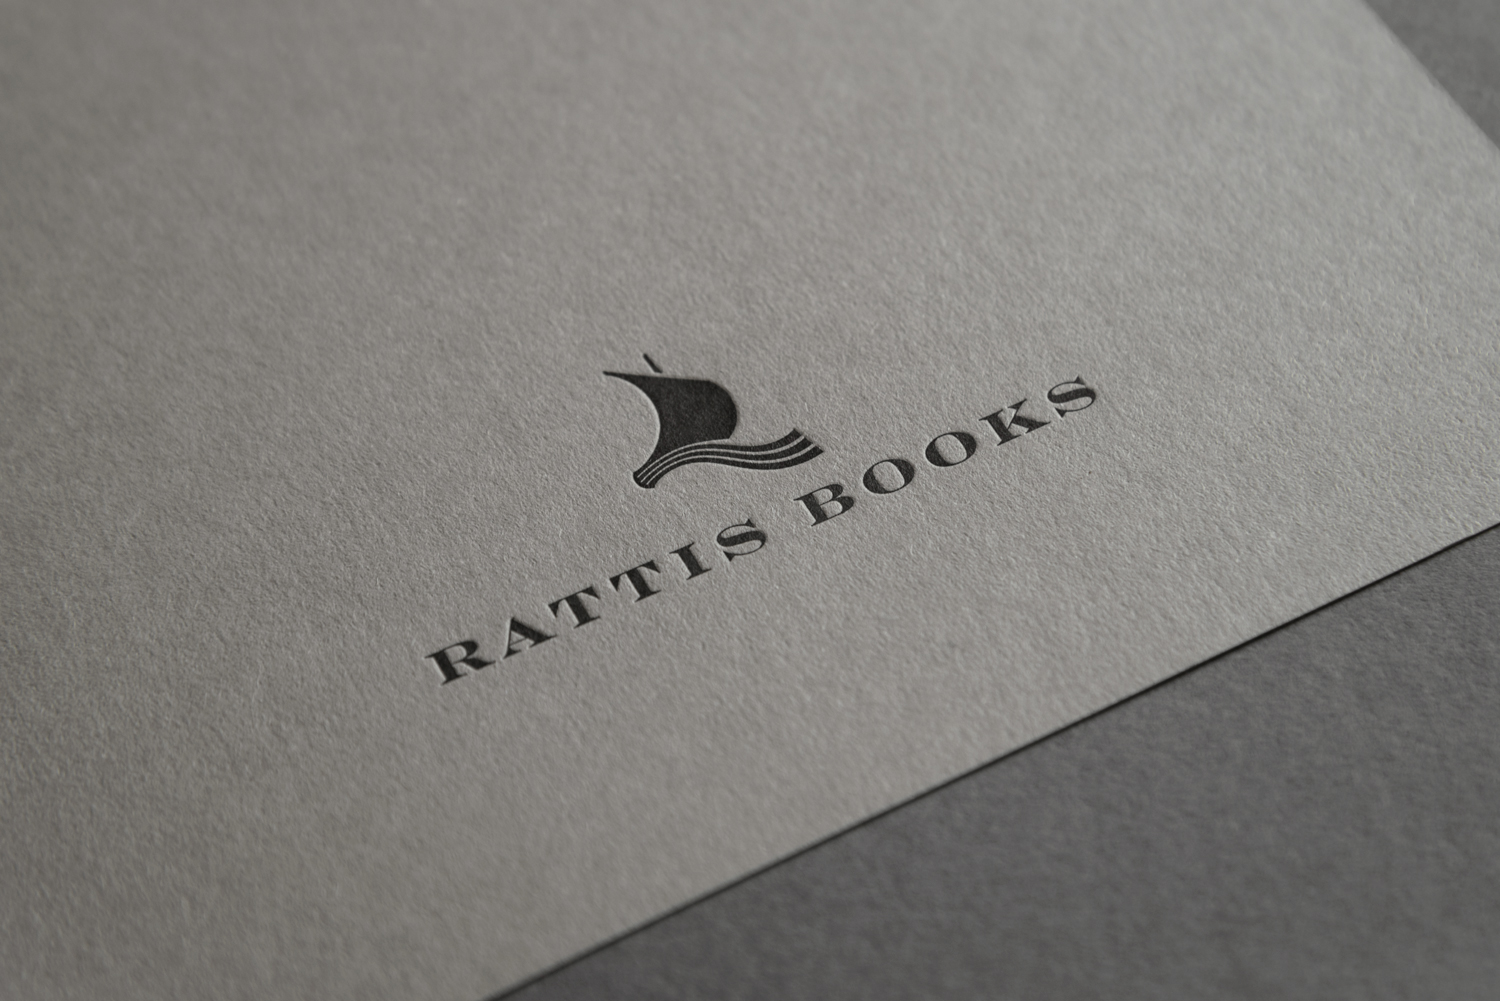 Branding by London-based design studio, private press and typography workshop The Counter Press for UK independent publisher Rattis Books.